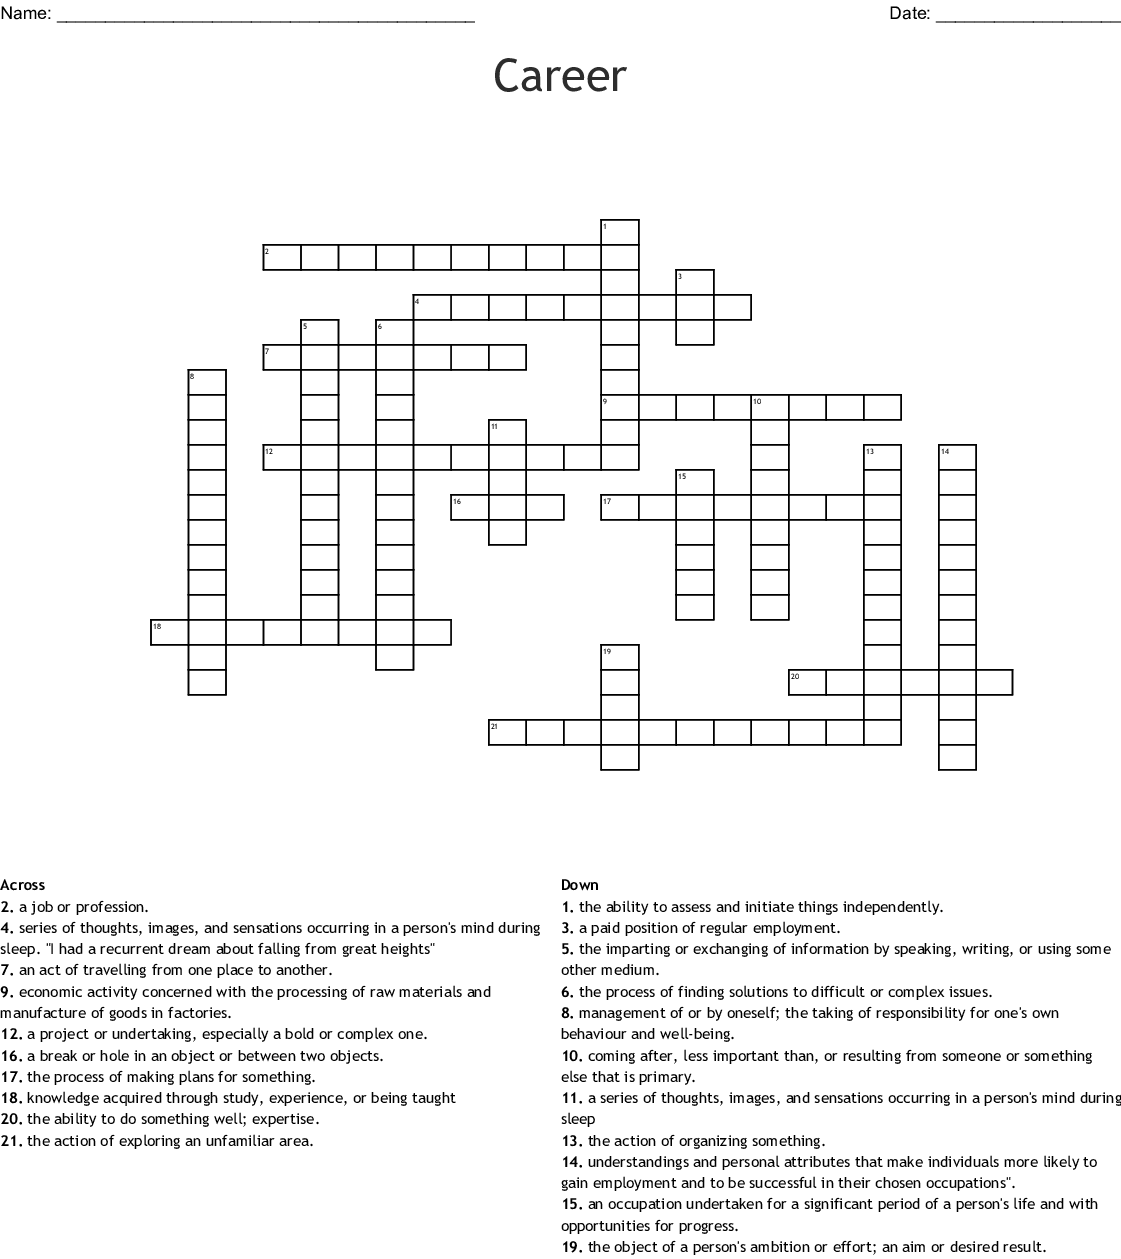 Career Crossword